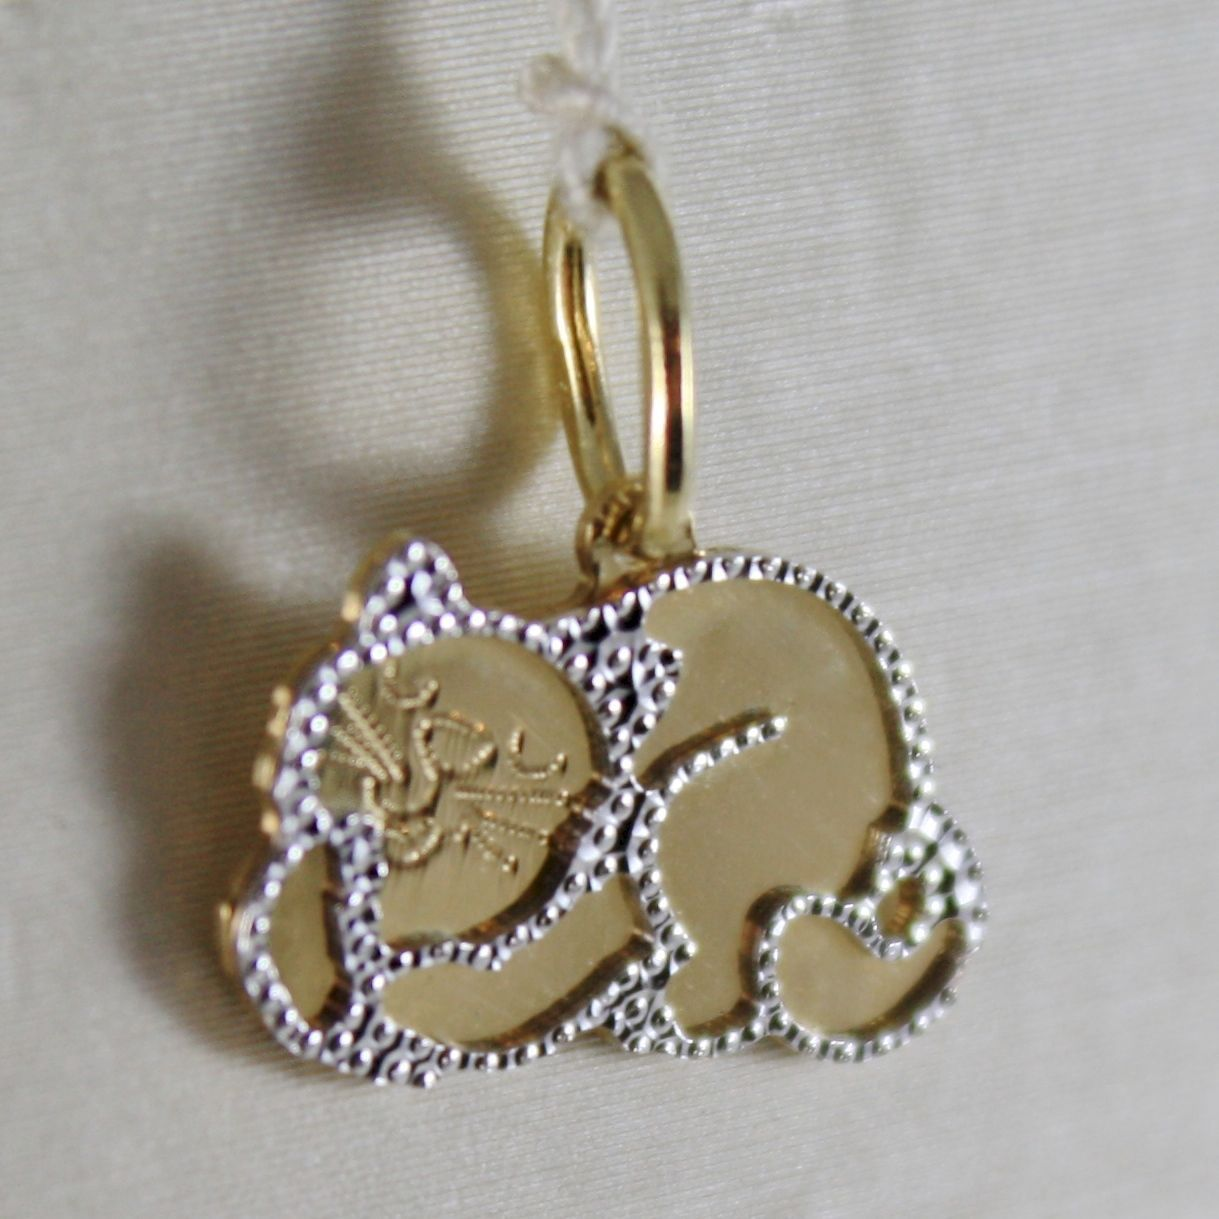 18K WHITE & YELLOW GOLD LITTLE CAT FLAT PENDANT FINELY WORKED, MADE IN ITALY